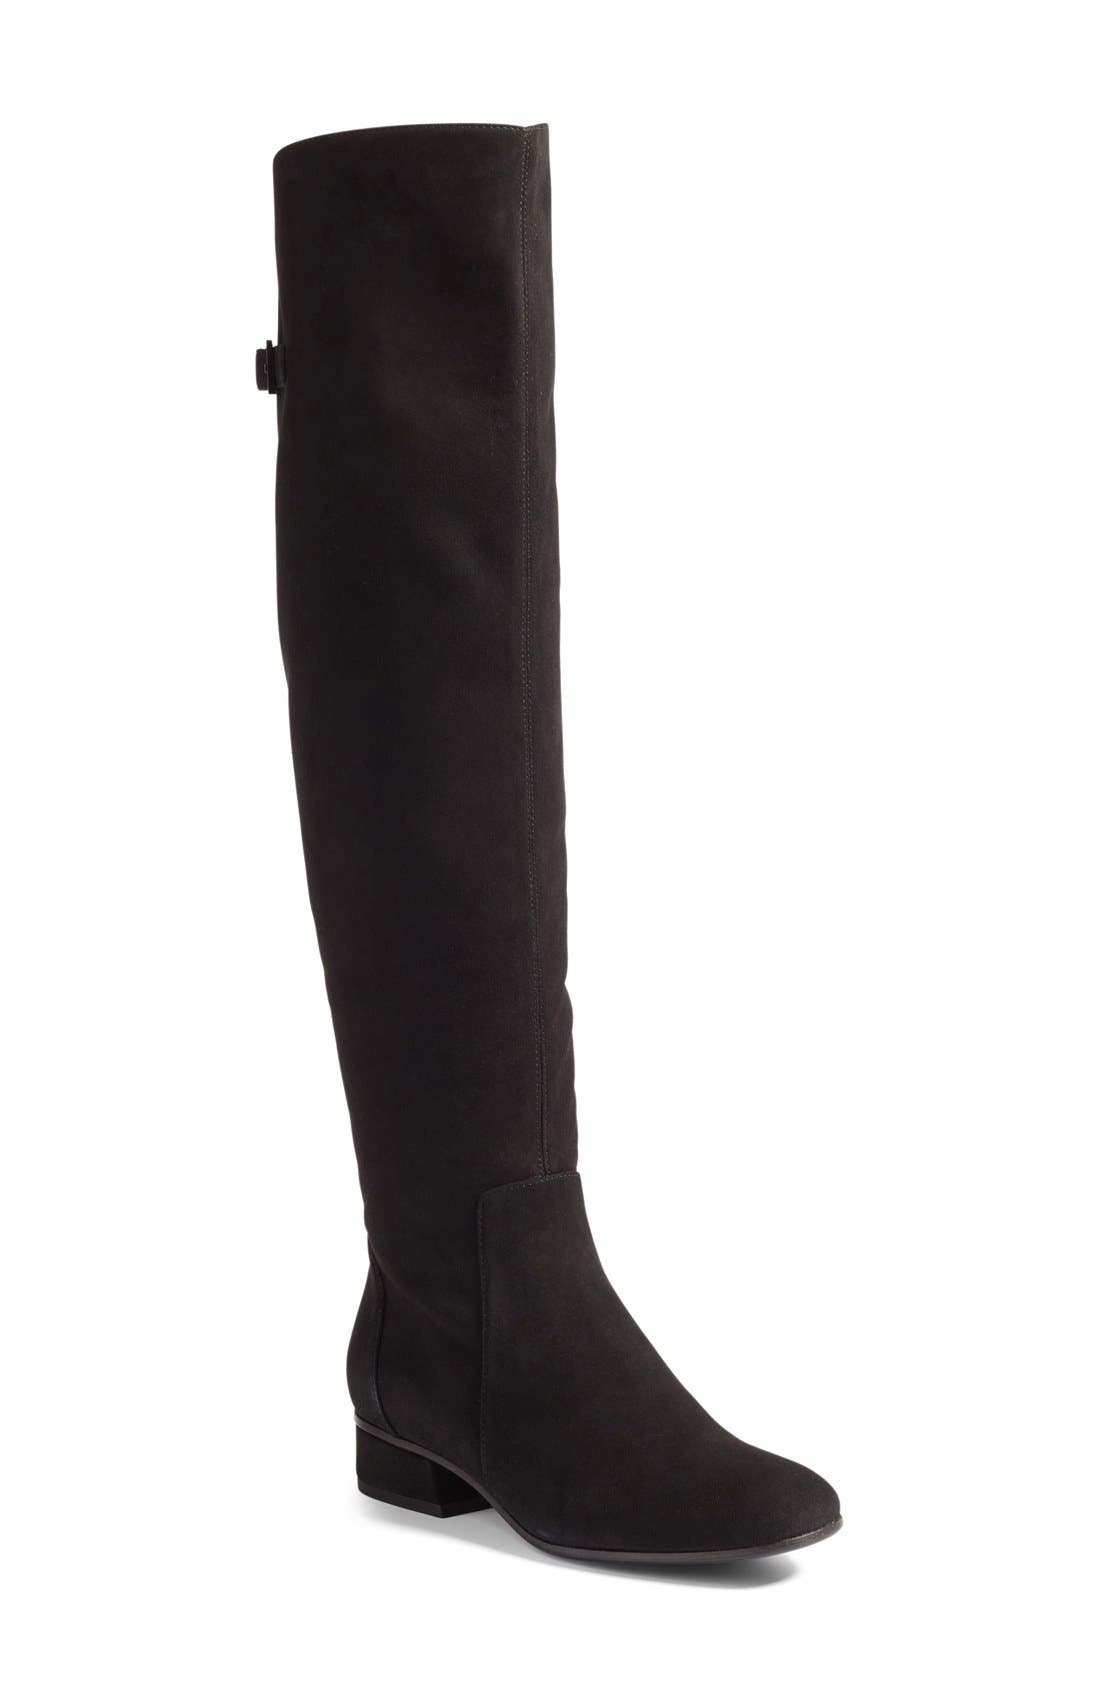 Lala Weatherproof Over the Knee Boot,                             Main thumbnail 1, color,                             001